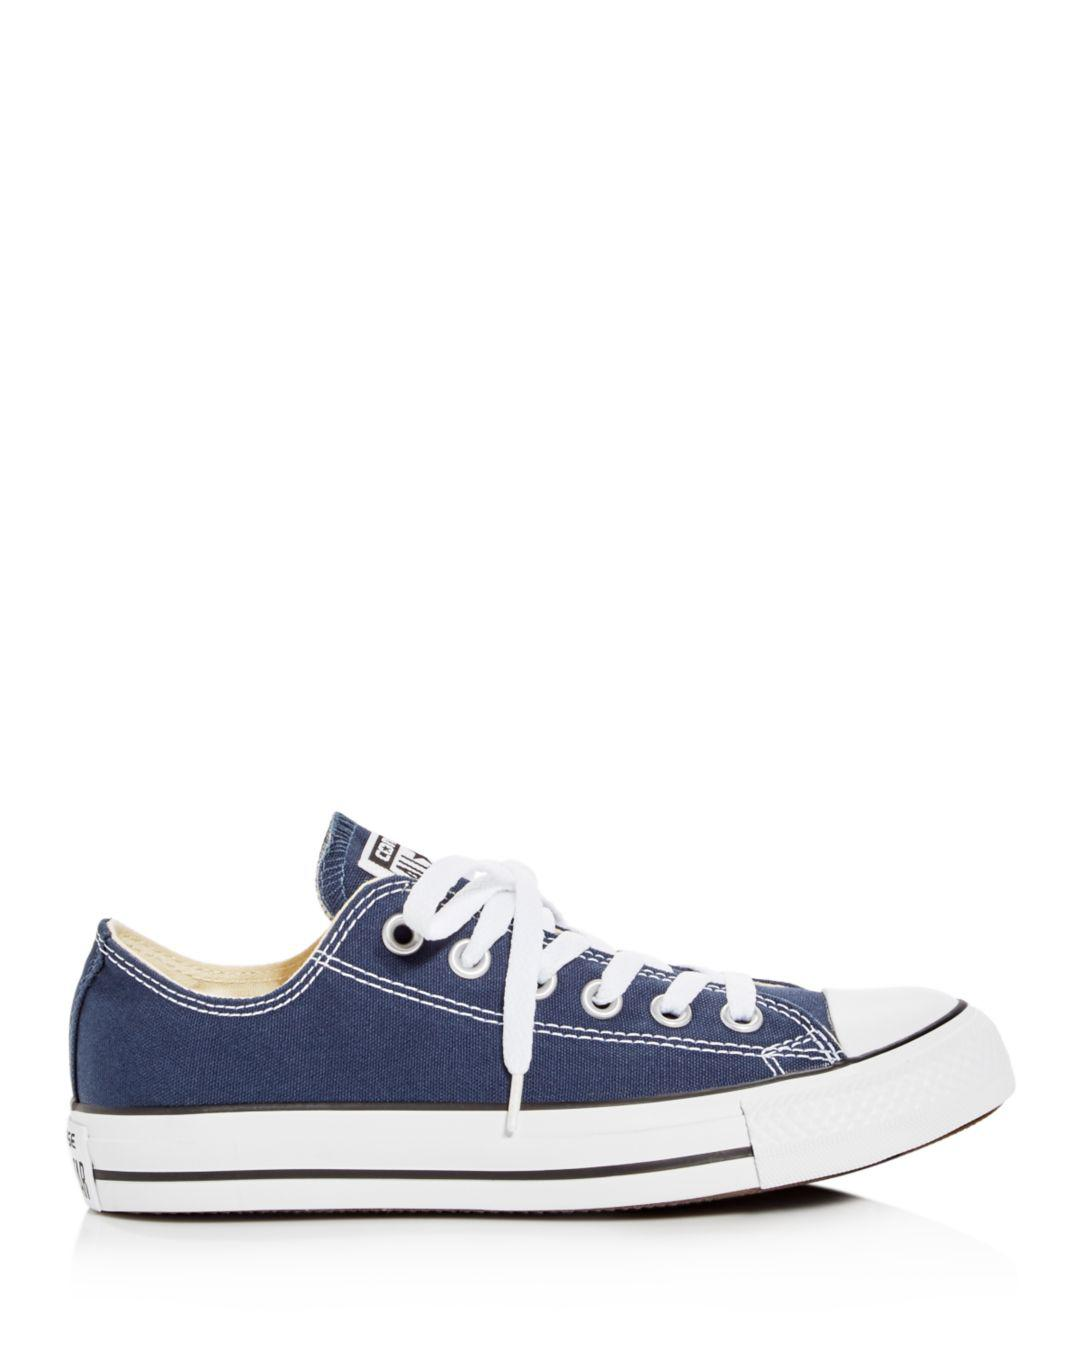 fdd4b5e22116 Lyst - Converse Women s Chuck Taylor All Star Lace Up Sneakers in Blue